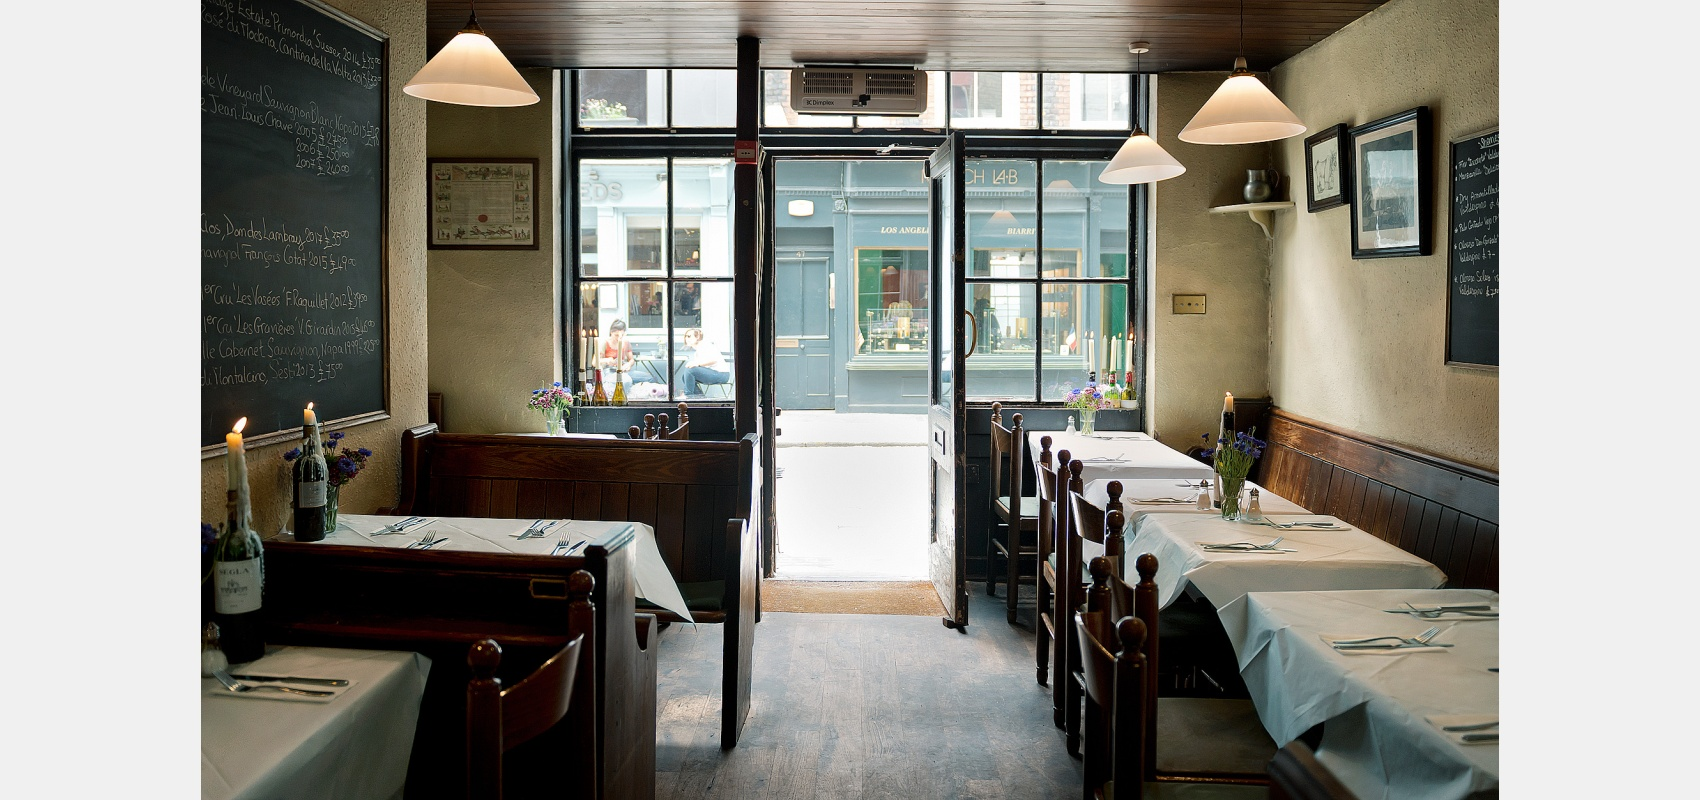 Location photography/Hidden Soho/ small restaurant interior/ looking out/onto street.